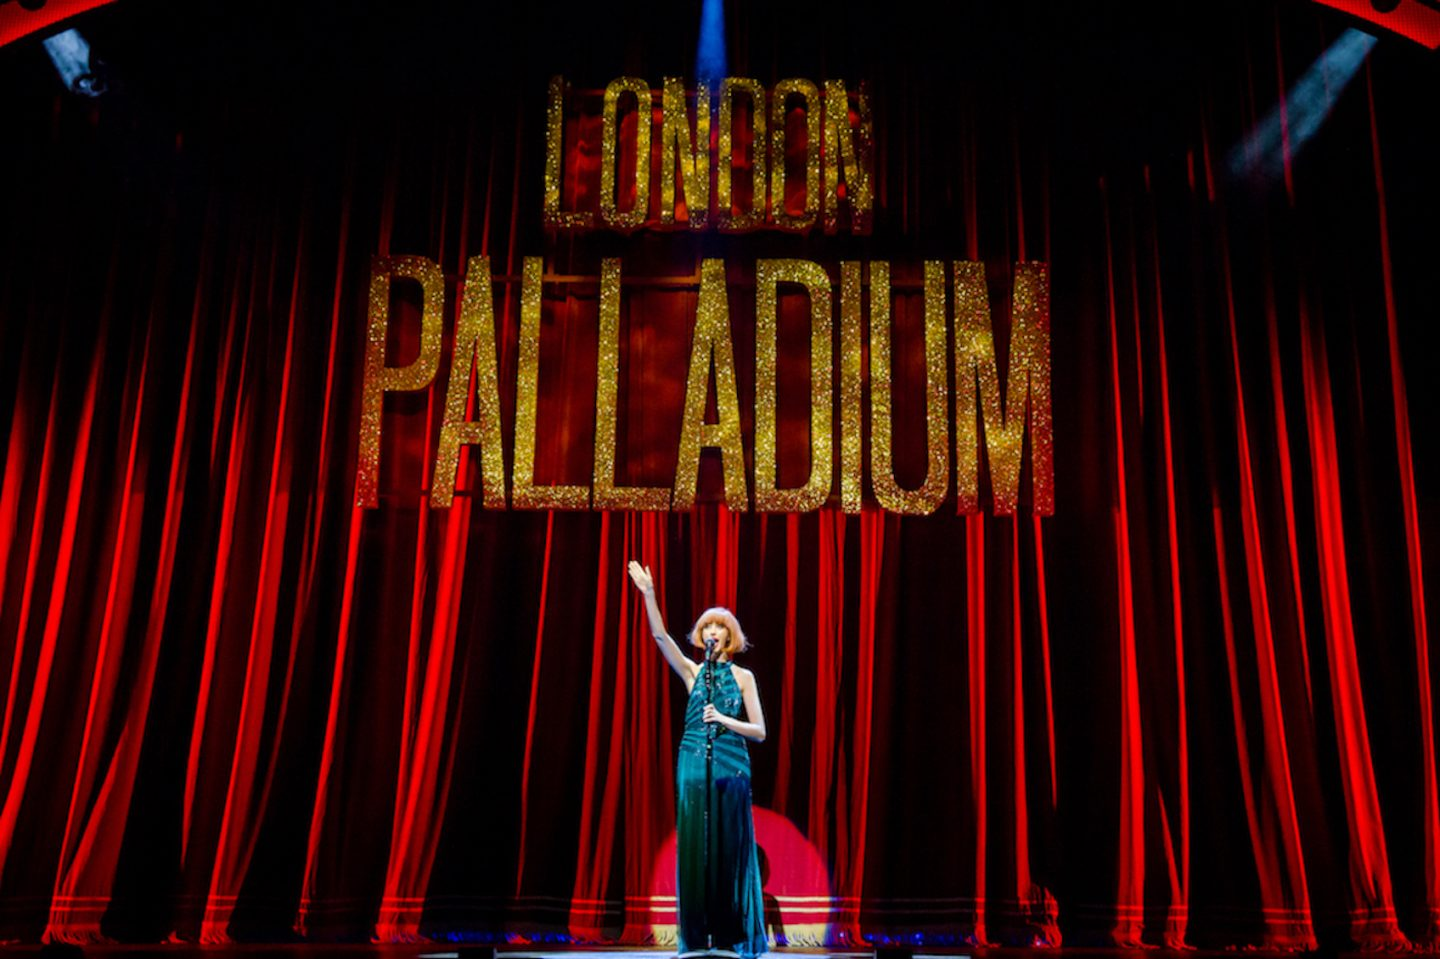 Cilla the Musical UK Tour